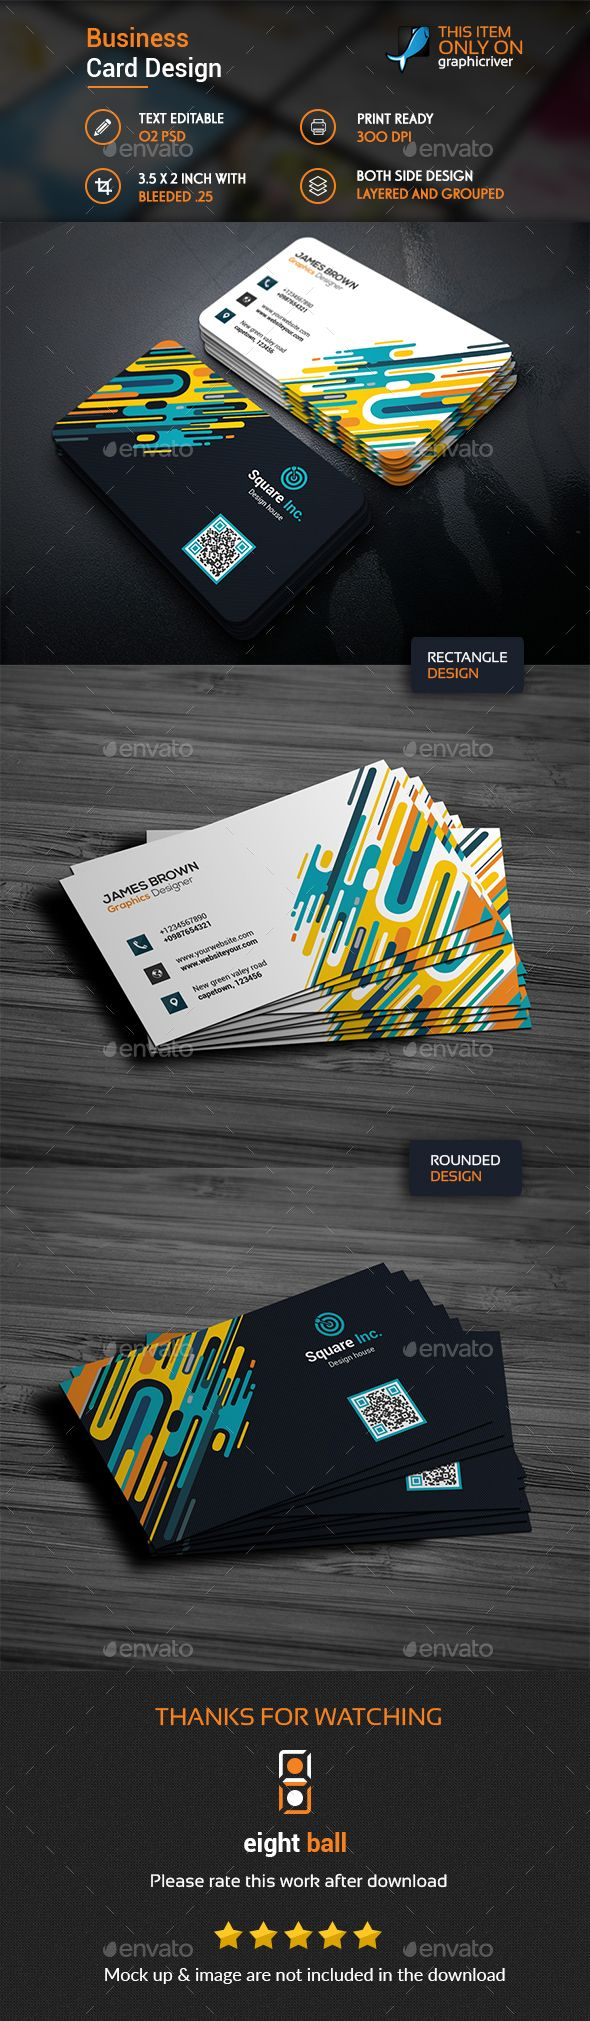 577 best business cards inspiration images on pinterest business abstract business card template reheart Choice Image